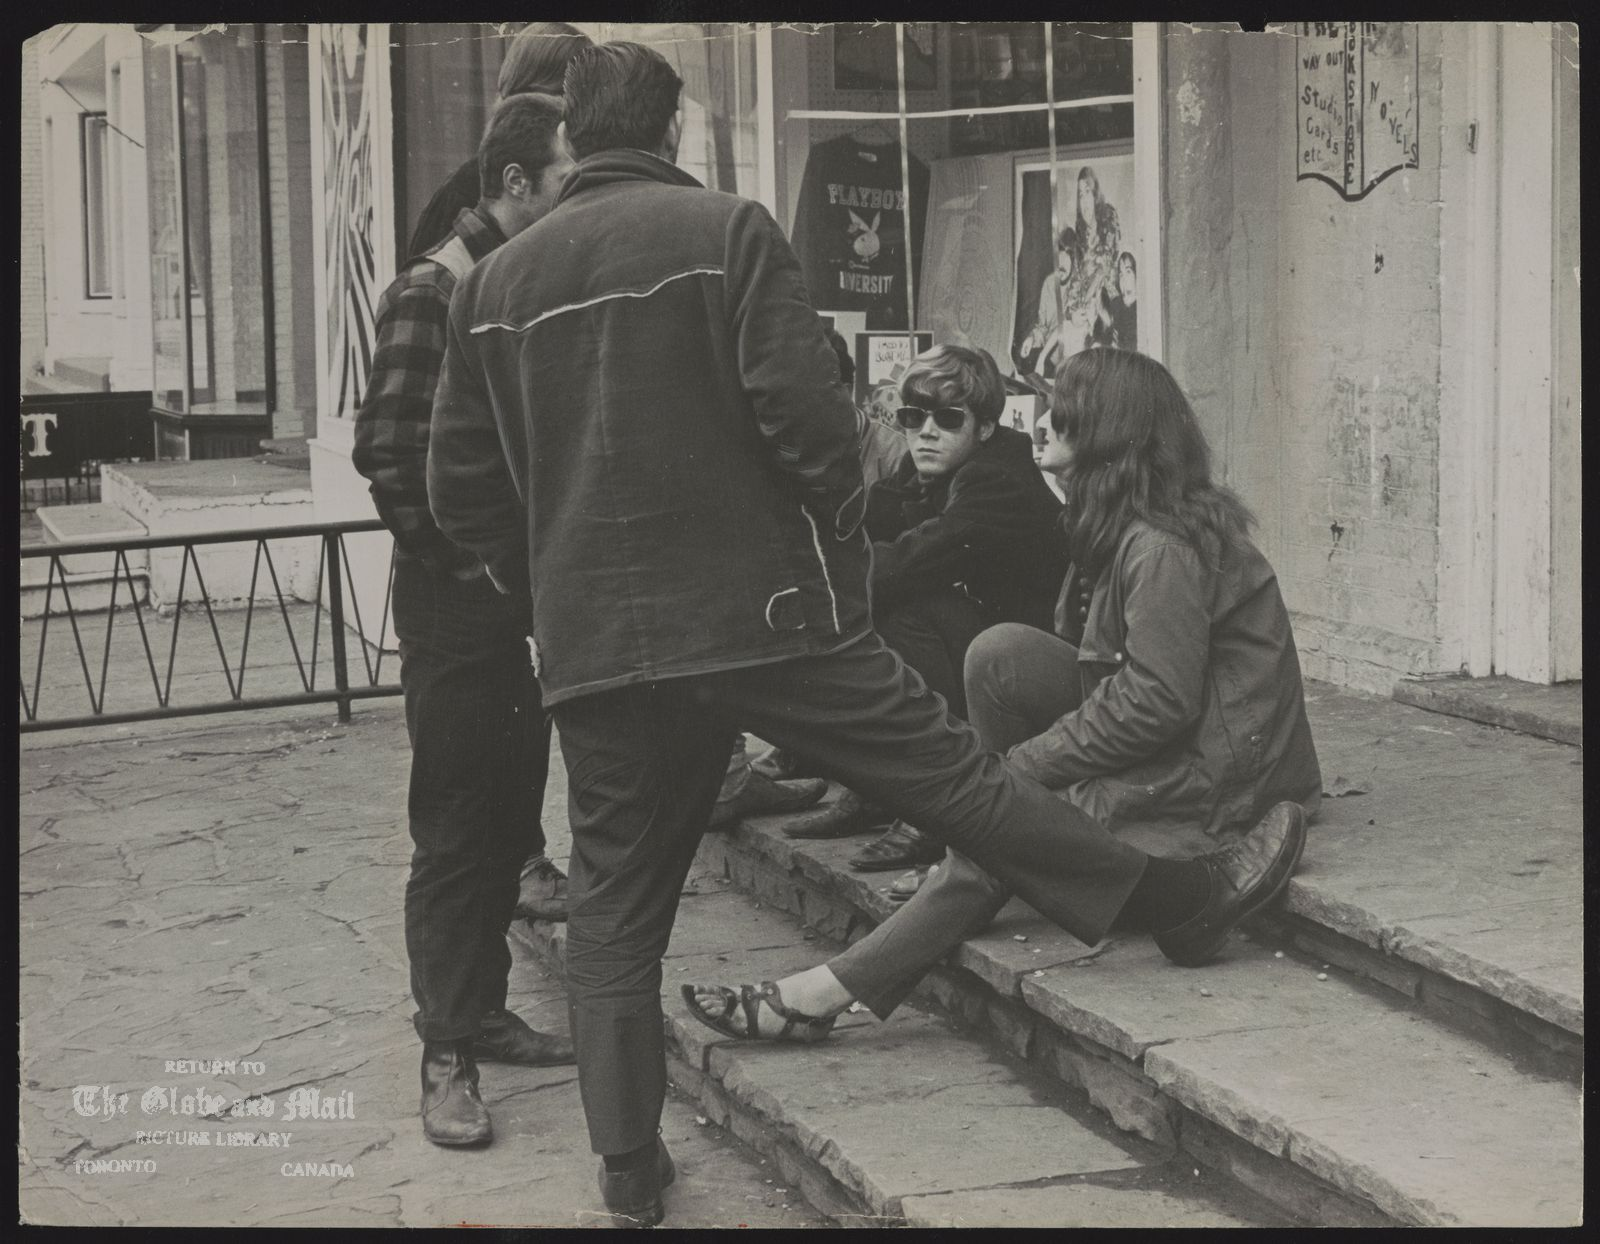 The notes transcribed from the back of this photograph are as follows: Hippies conversing in Yorkville yesterday. Girls in teens vanish in the village.